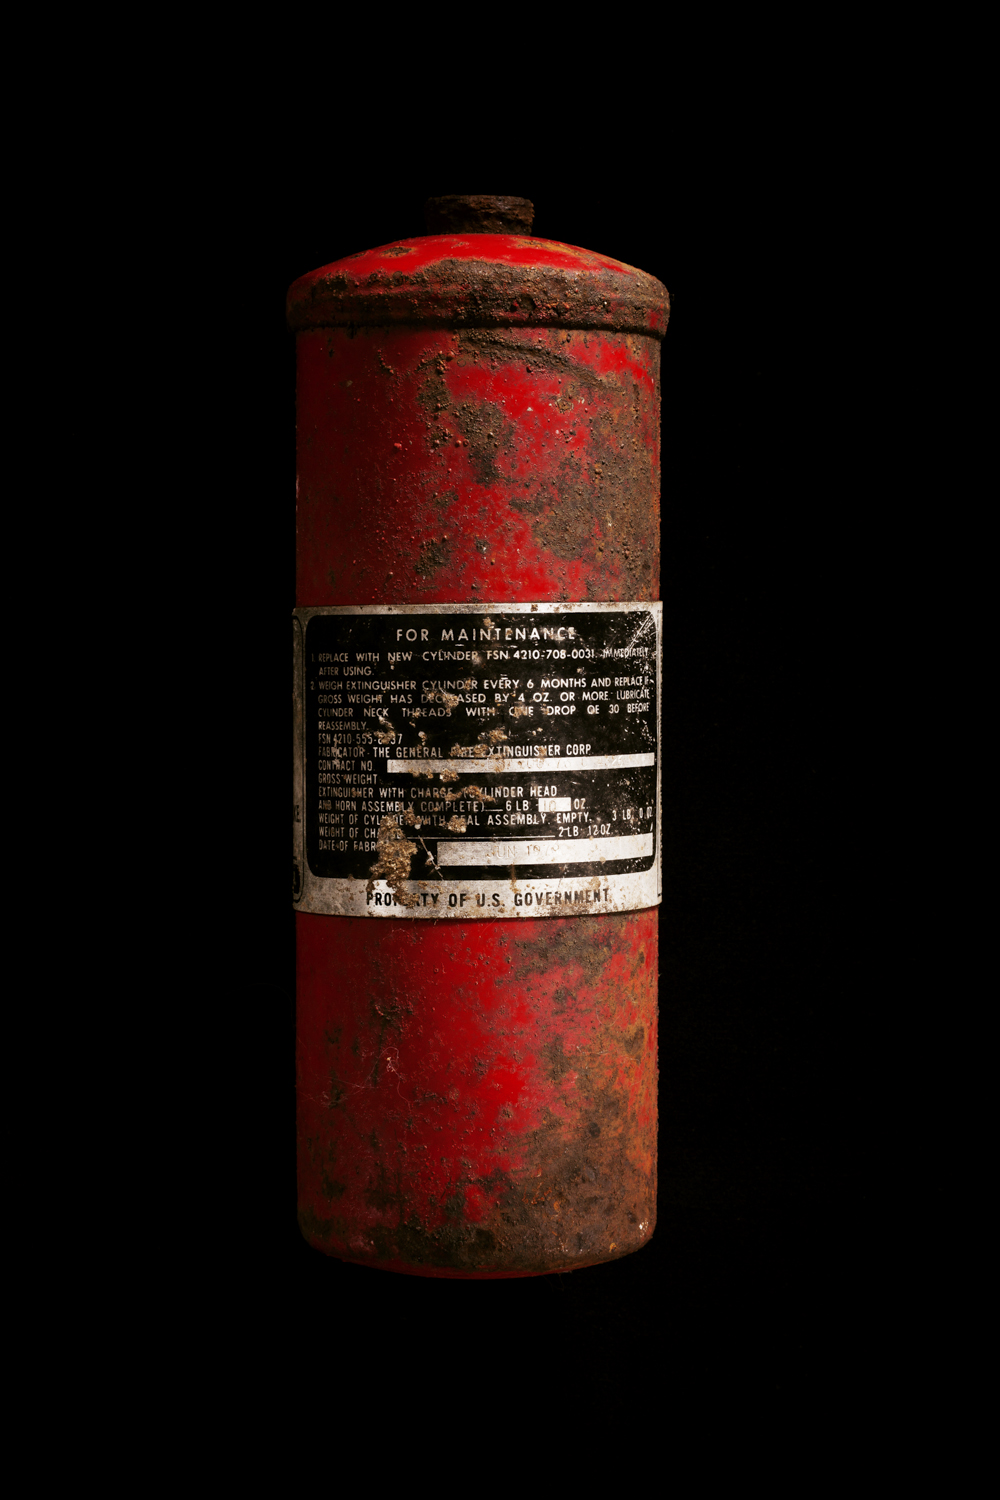 Fire Extinguisher, Wompatuck State Park